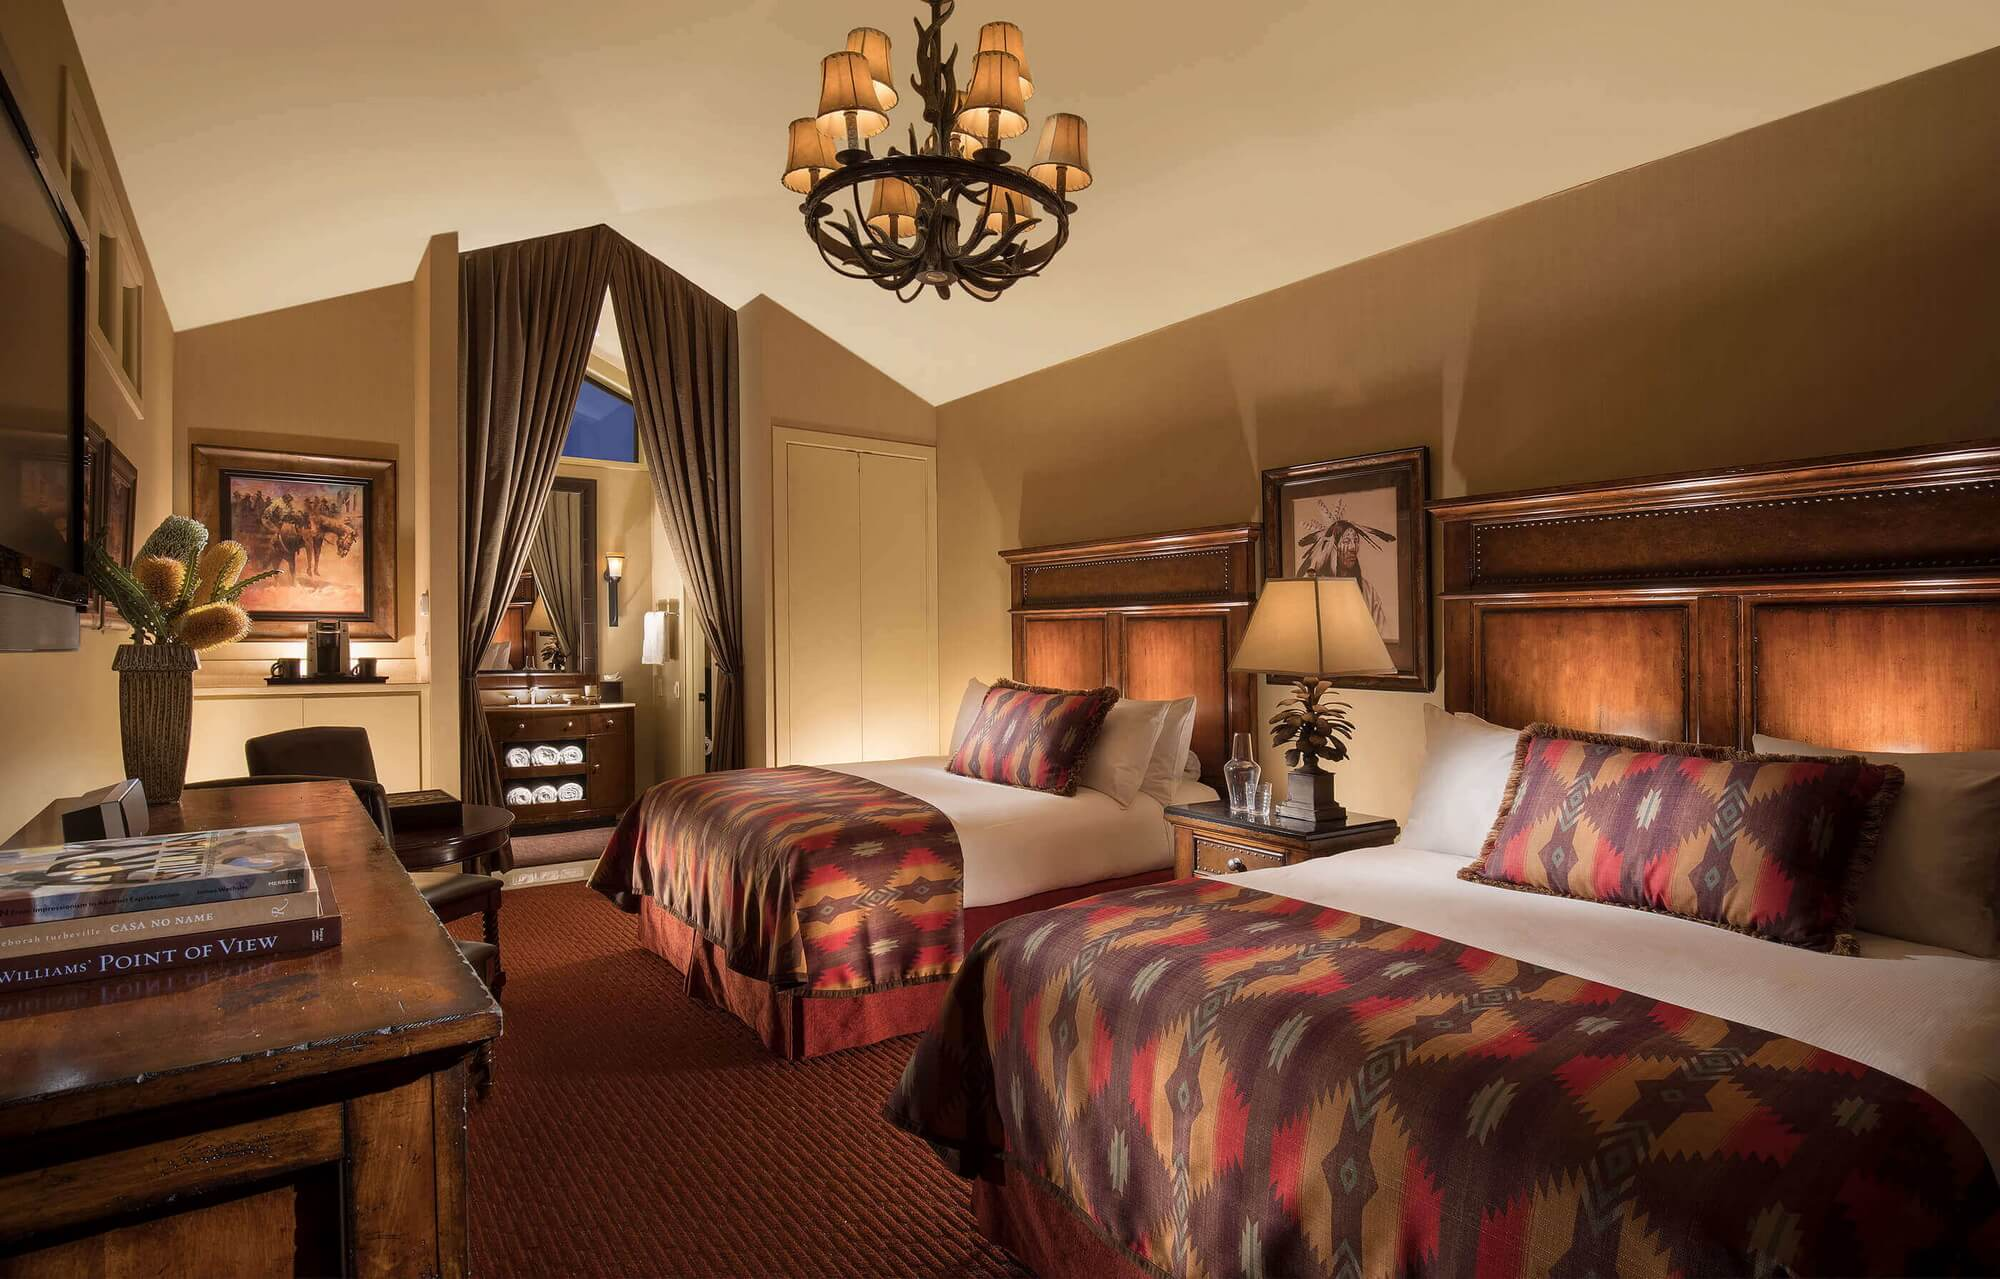 luxury cabin with two king beds, decorated in an American West theme